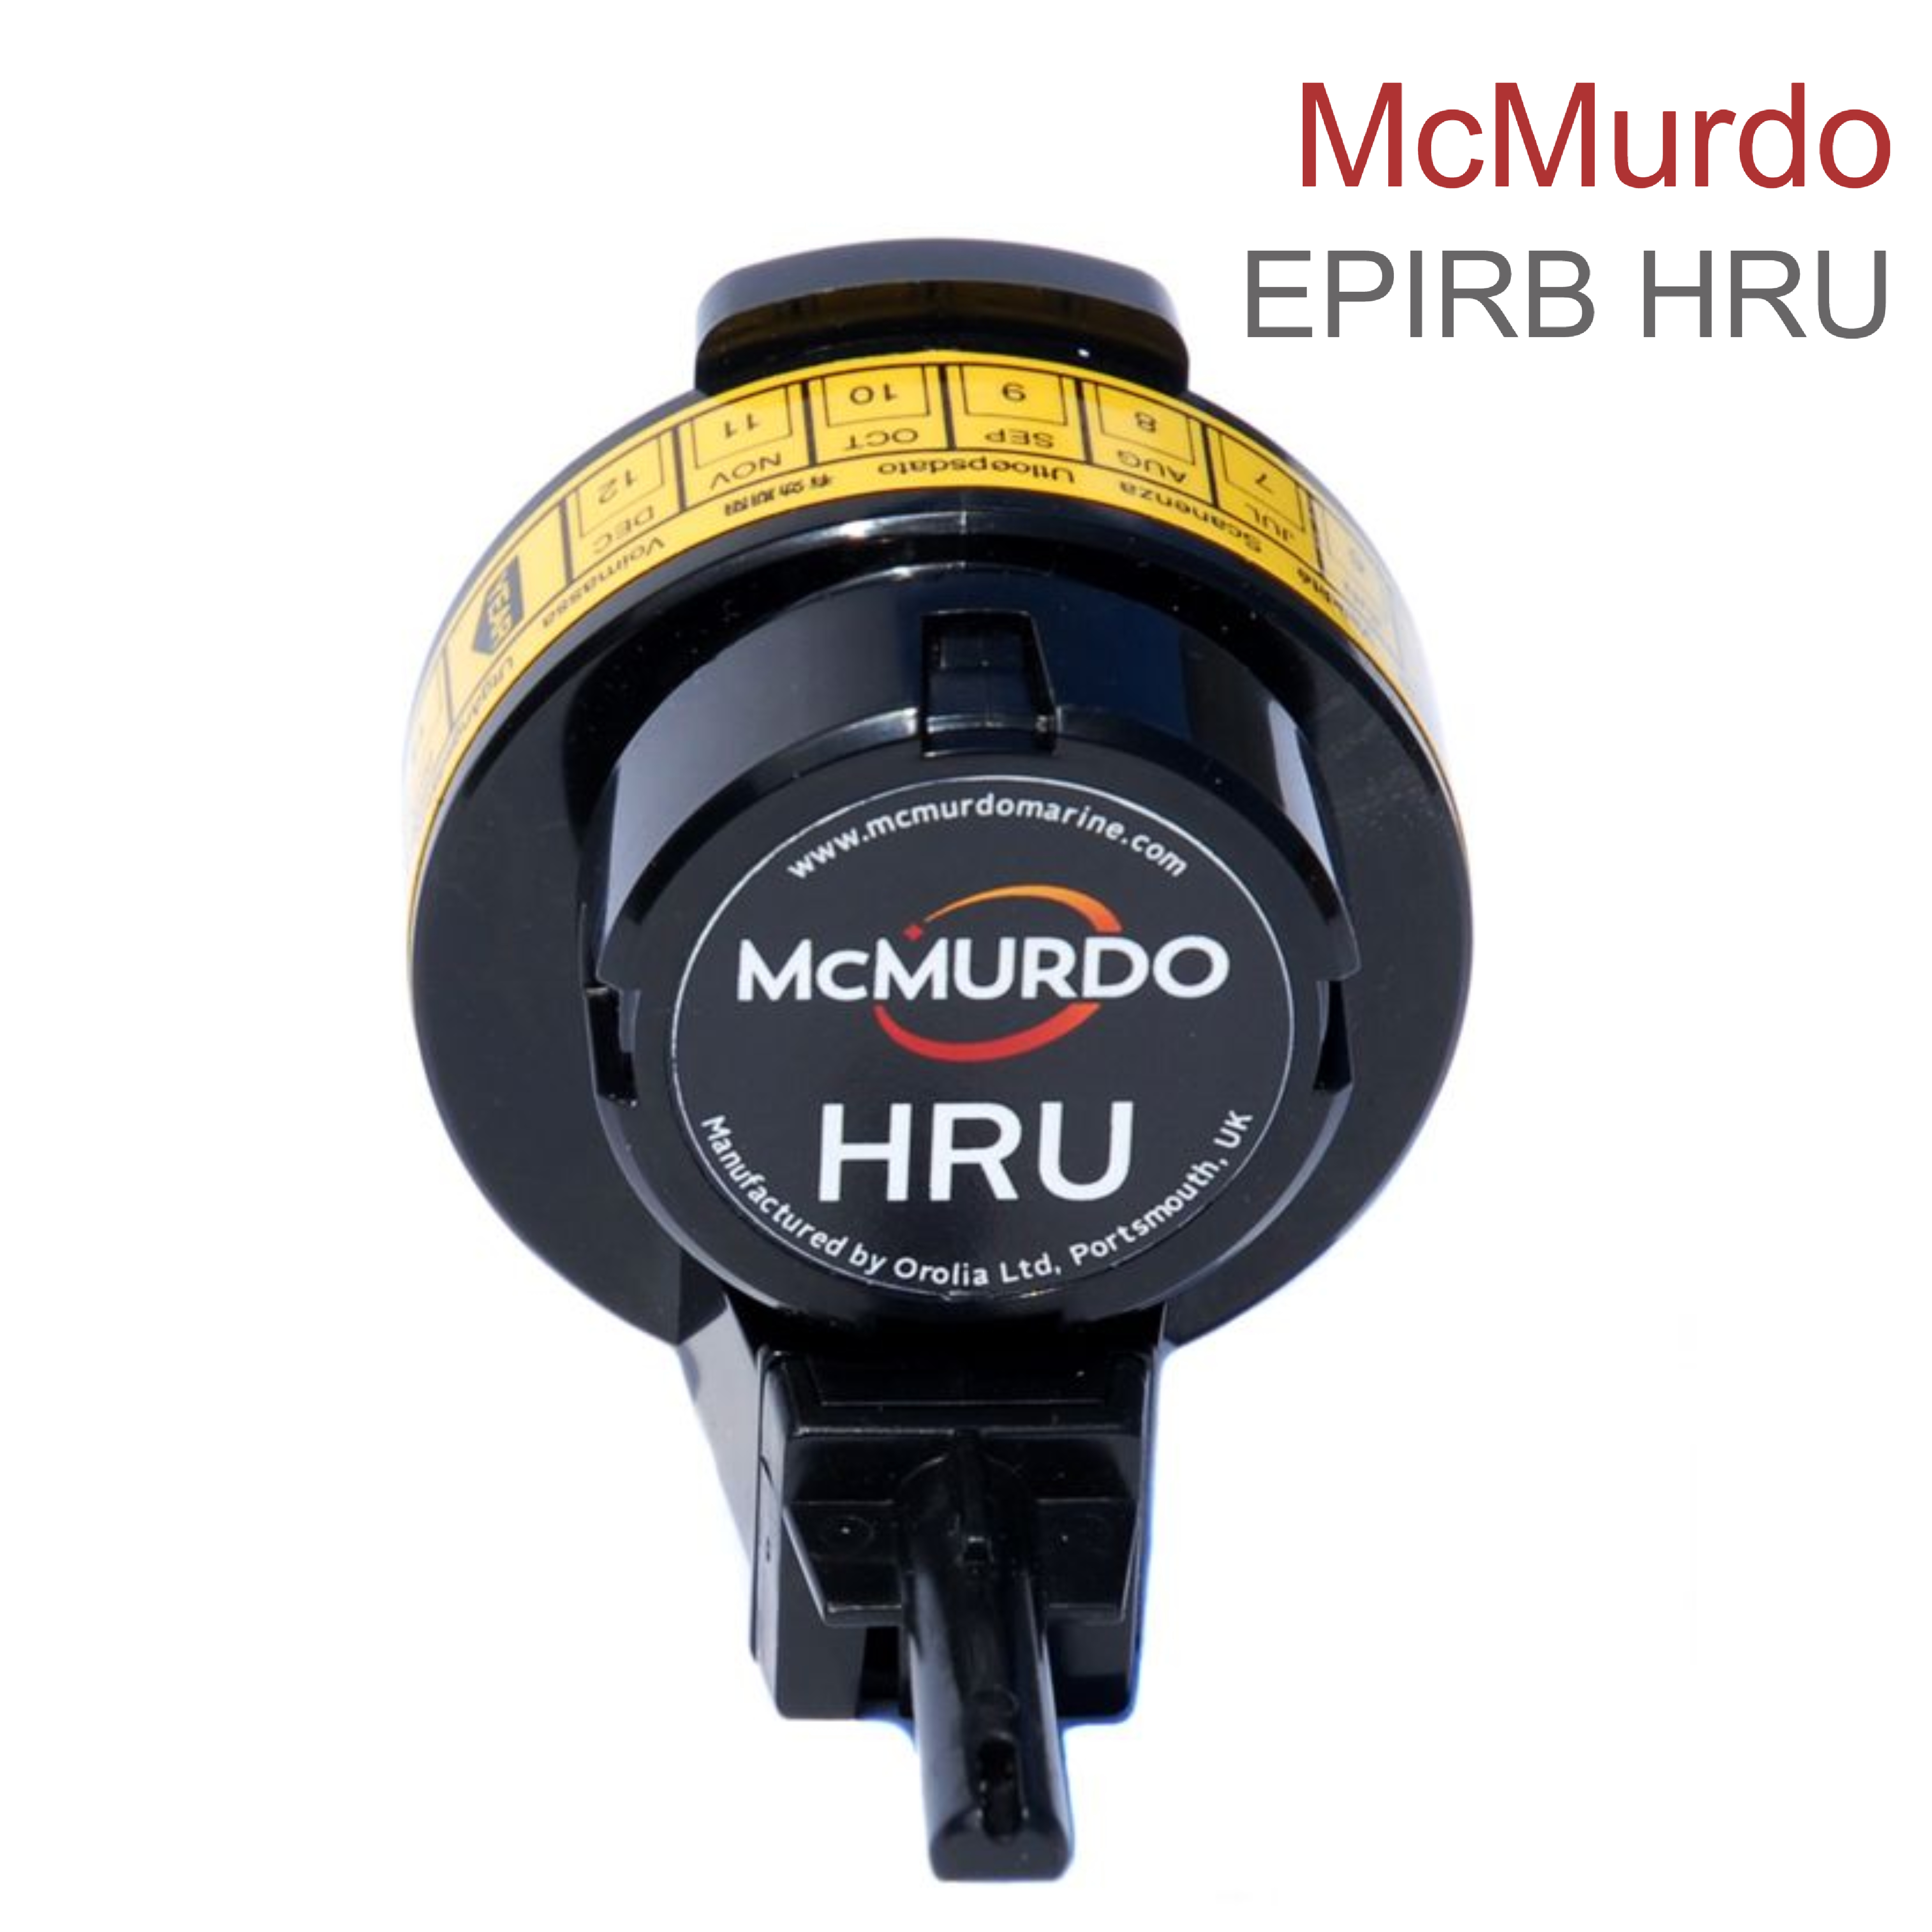 McMurdo EPIRB Hydrostatic Release Unit | SOLAS & IMO Complies | Compact & Float Free